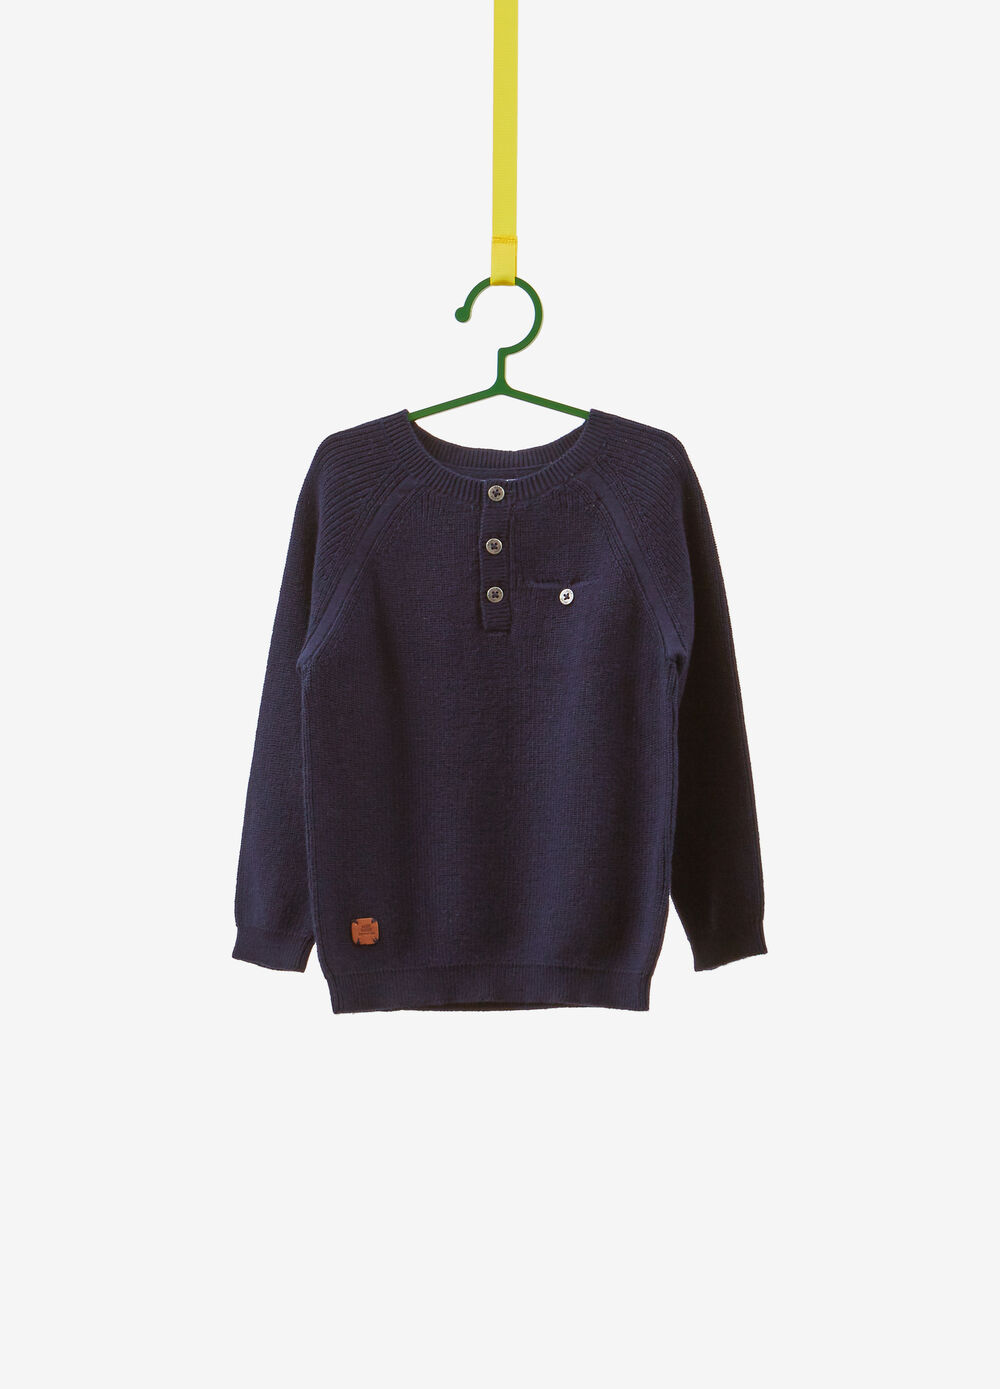 Knitted 100% cotton pullover with pocket